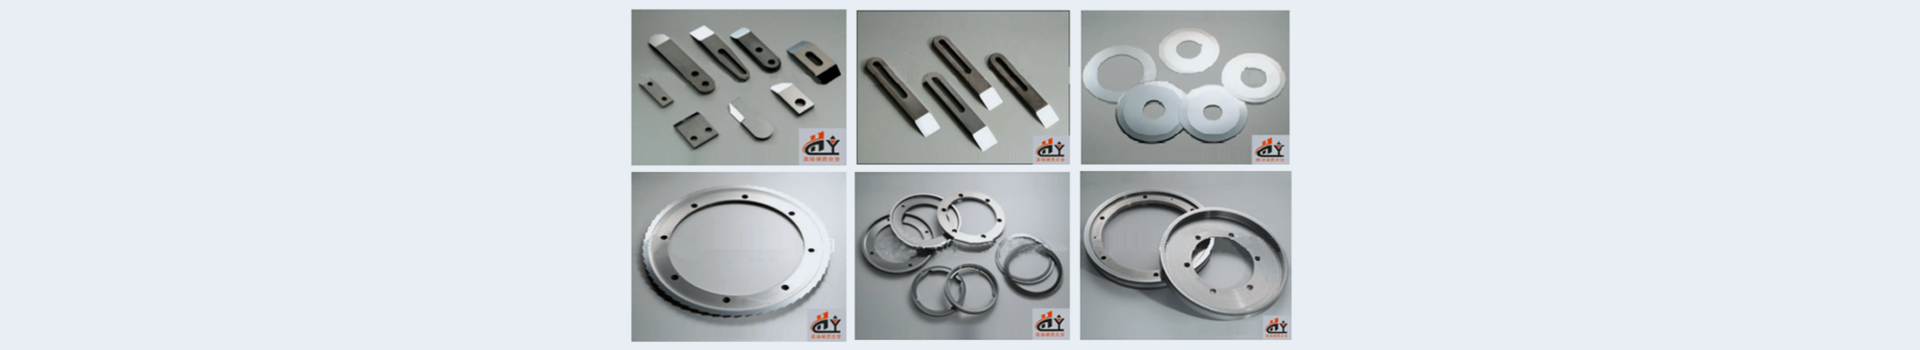 Zigong Hanyu Cemented Carbide Co. Ltd.